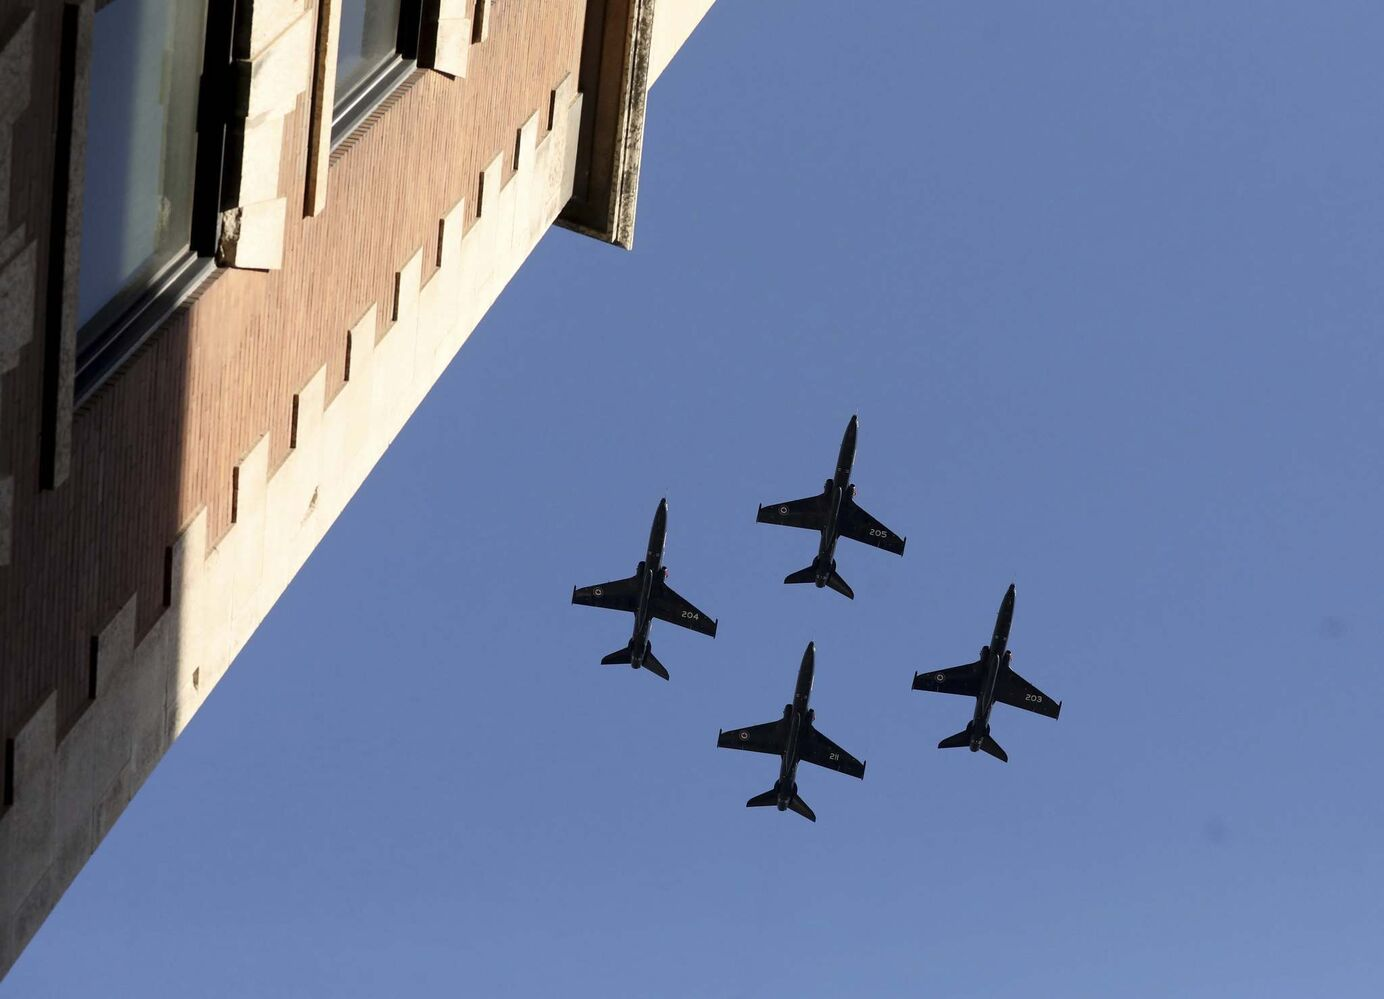 RUTH BONNEVILLE / WINNIPEG FREE PRESS</p><p>Four fighter jets pass over Bell MTS Place as thousands of Winnipeg Jets fans scream during the start of Game 1 of the Western Conference final between Winnipeg Jets and Vegas Golden Knights in Winnipeg Saturday, May 12, 2018 during the Whiteout street party.</p>